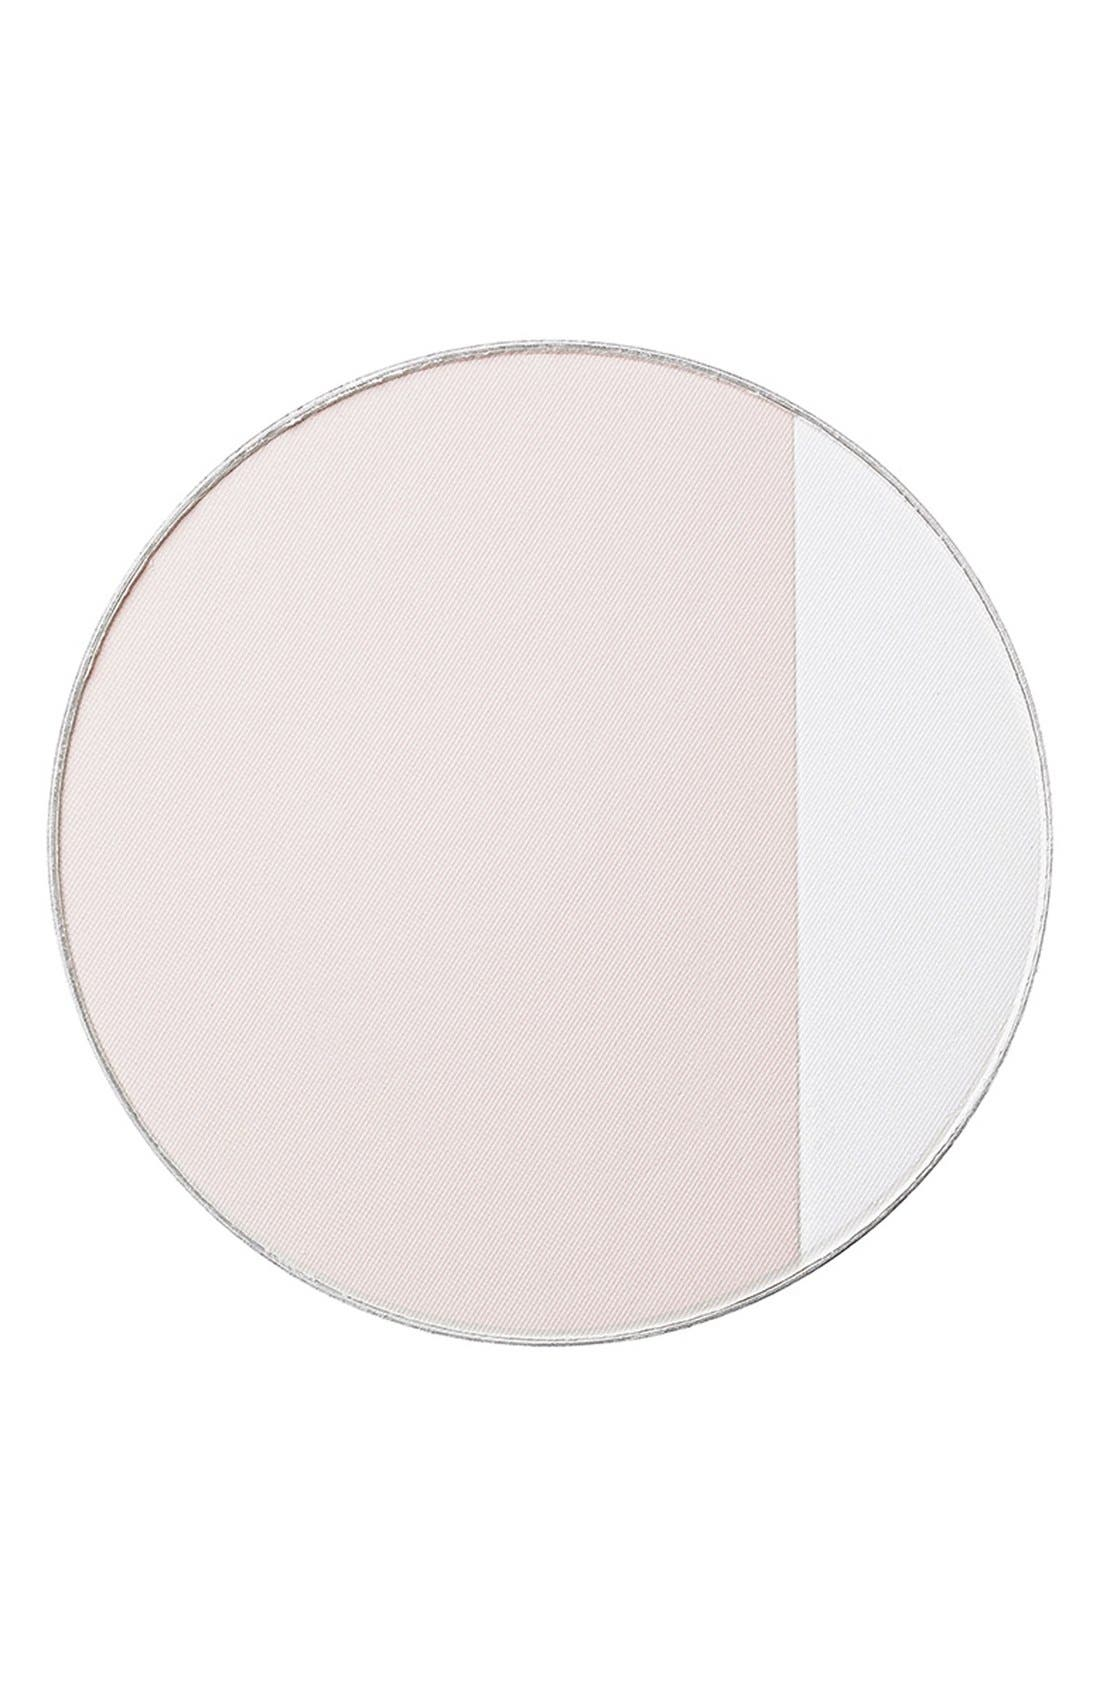 Koh Gen Do 'Maifanshi' Pressed Powder Refill